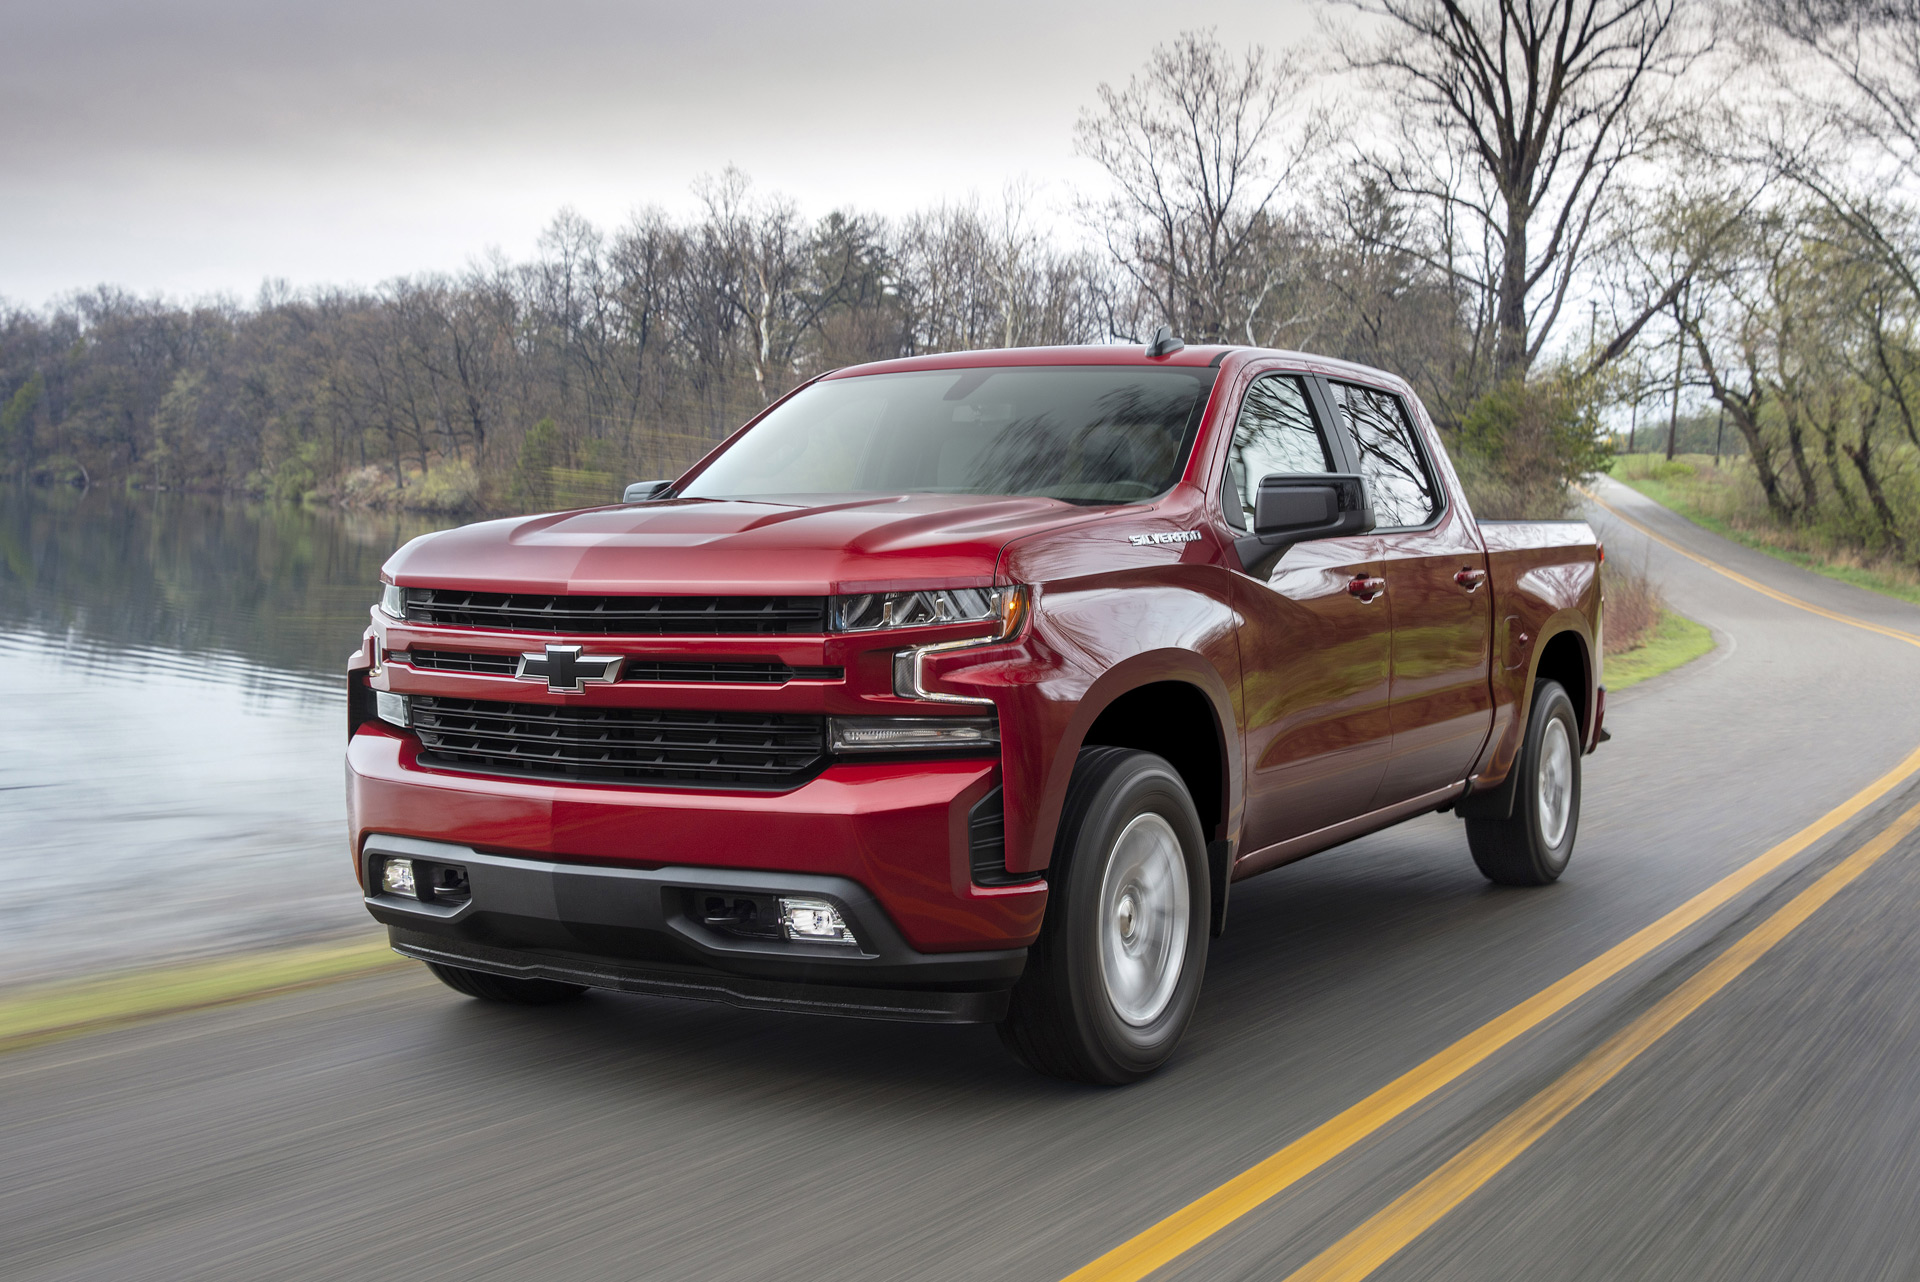 2019 Chevy Silverado will offer new turbo-4 that can run on 2 cylinders